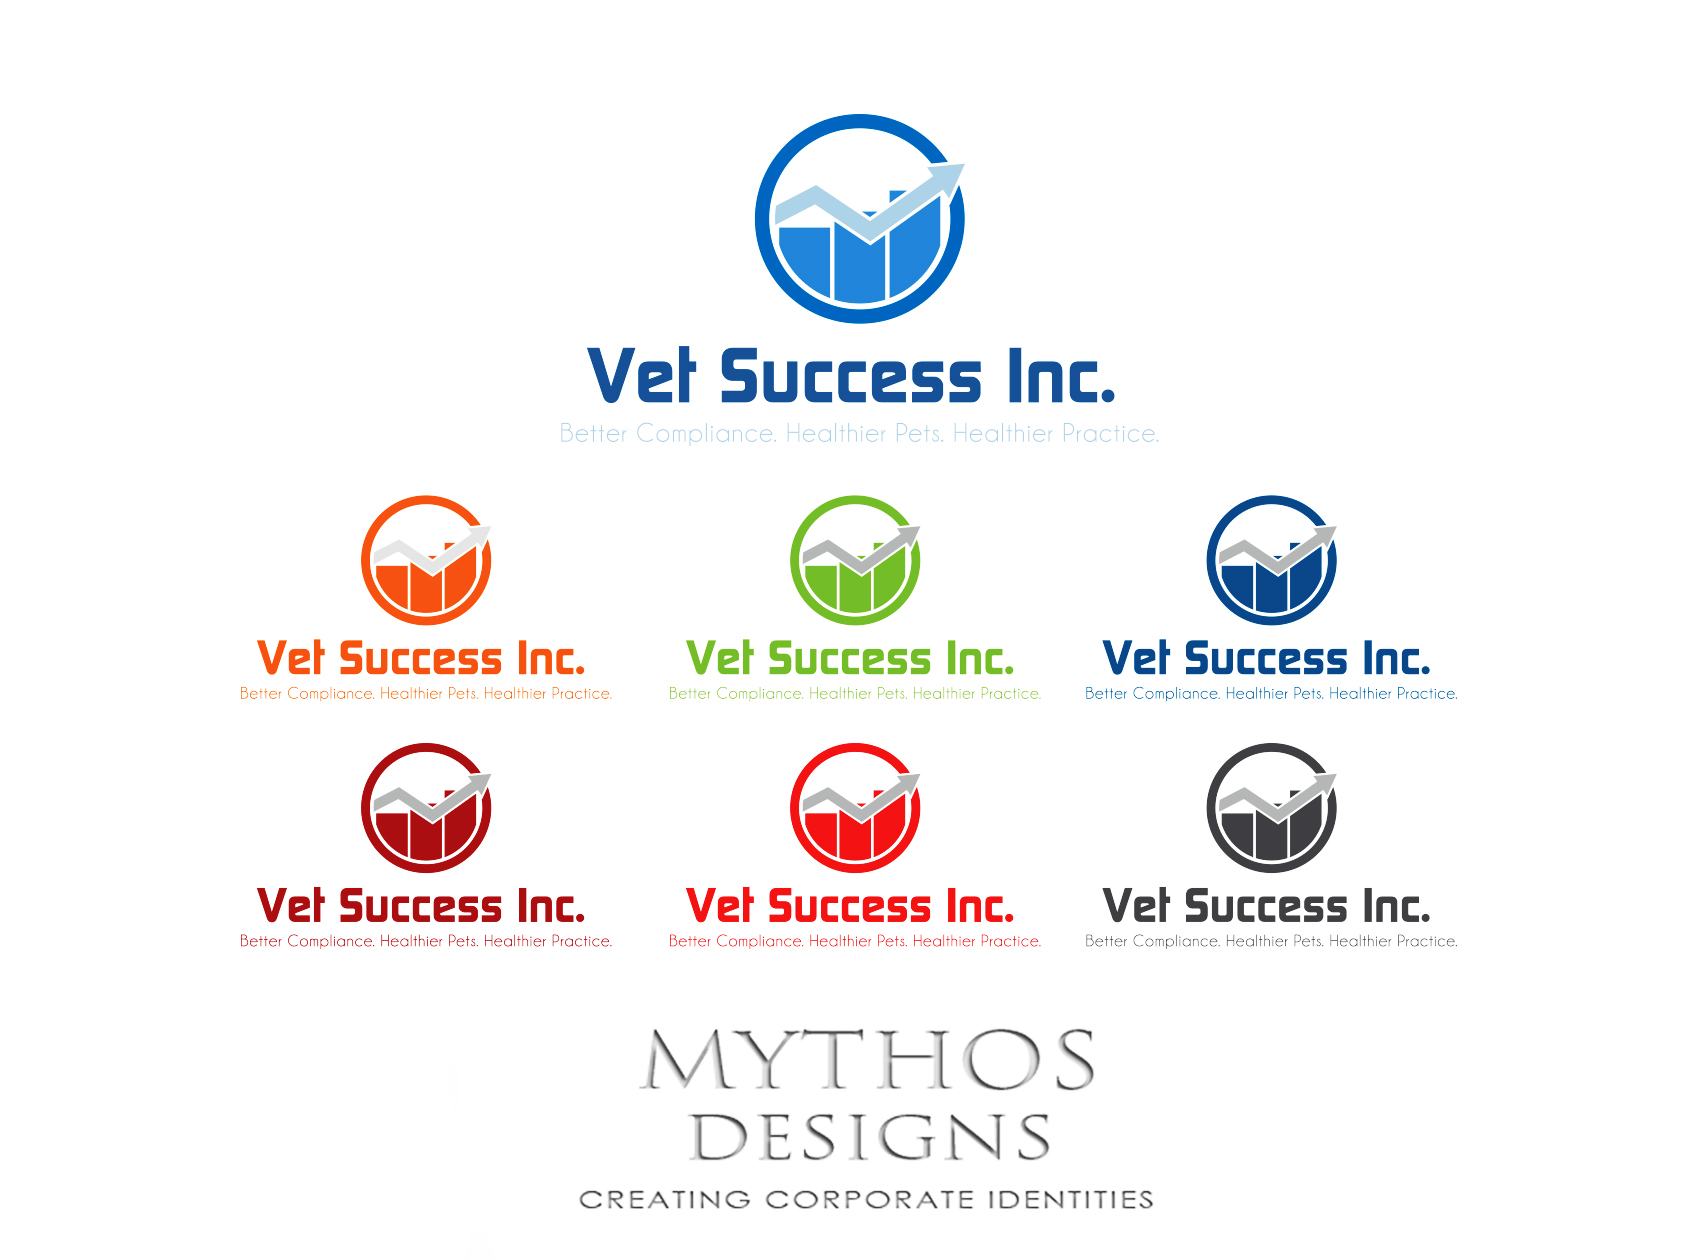 Logo Design by Mythos Designs - Entry No. 108 in the Logo Design Contest Imaginative Logo Design for Vet Success Inc..